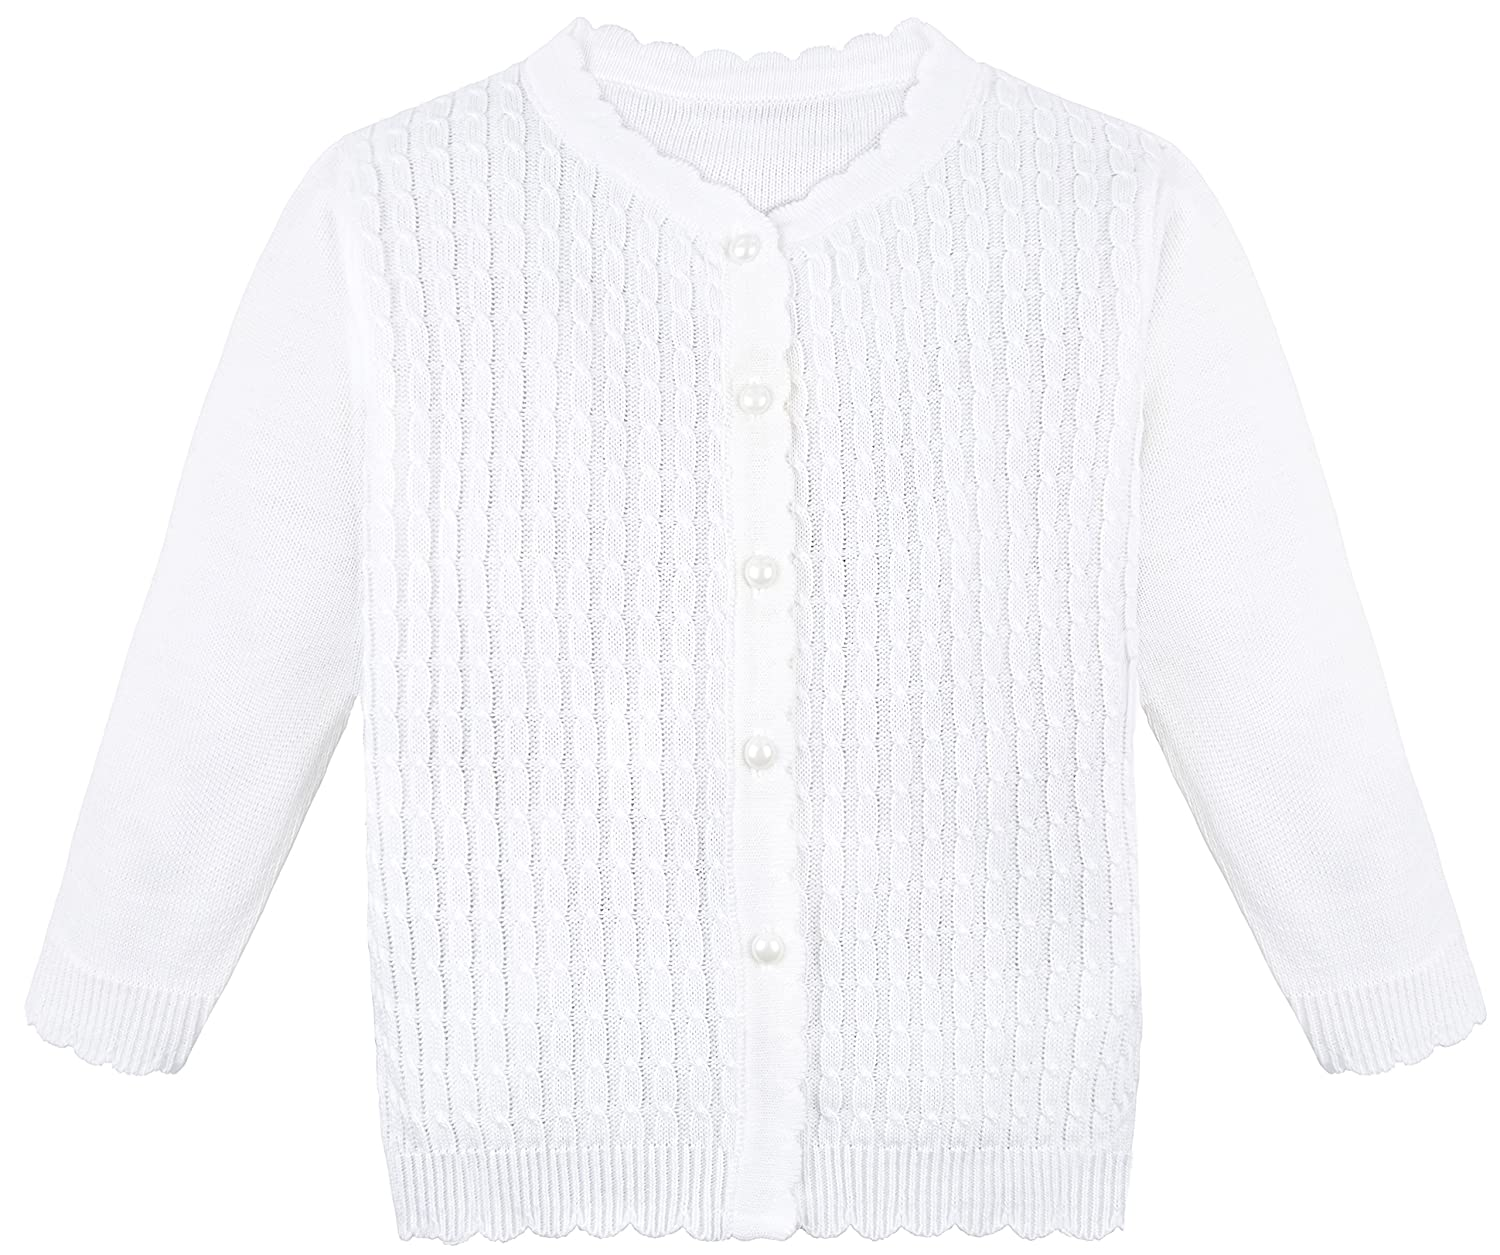 Lilax Little Girls' Cable Knit Cardigan Sweater 216